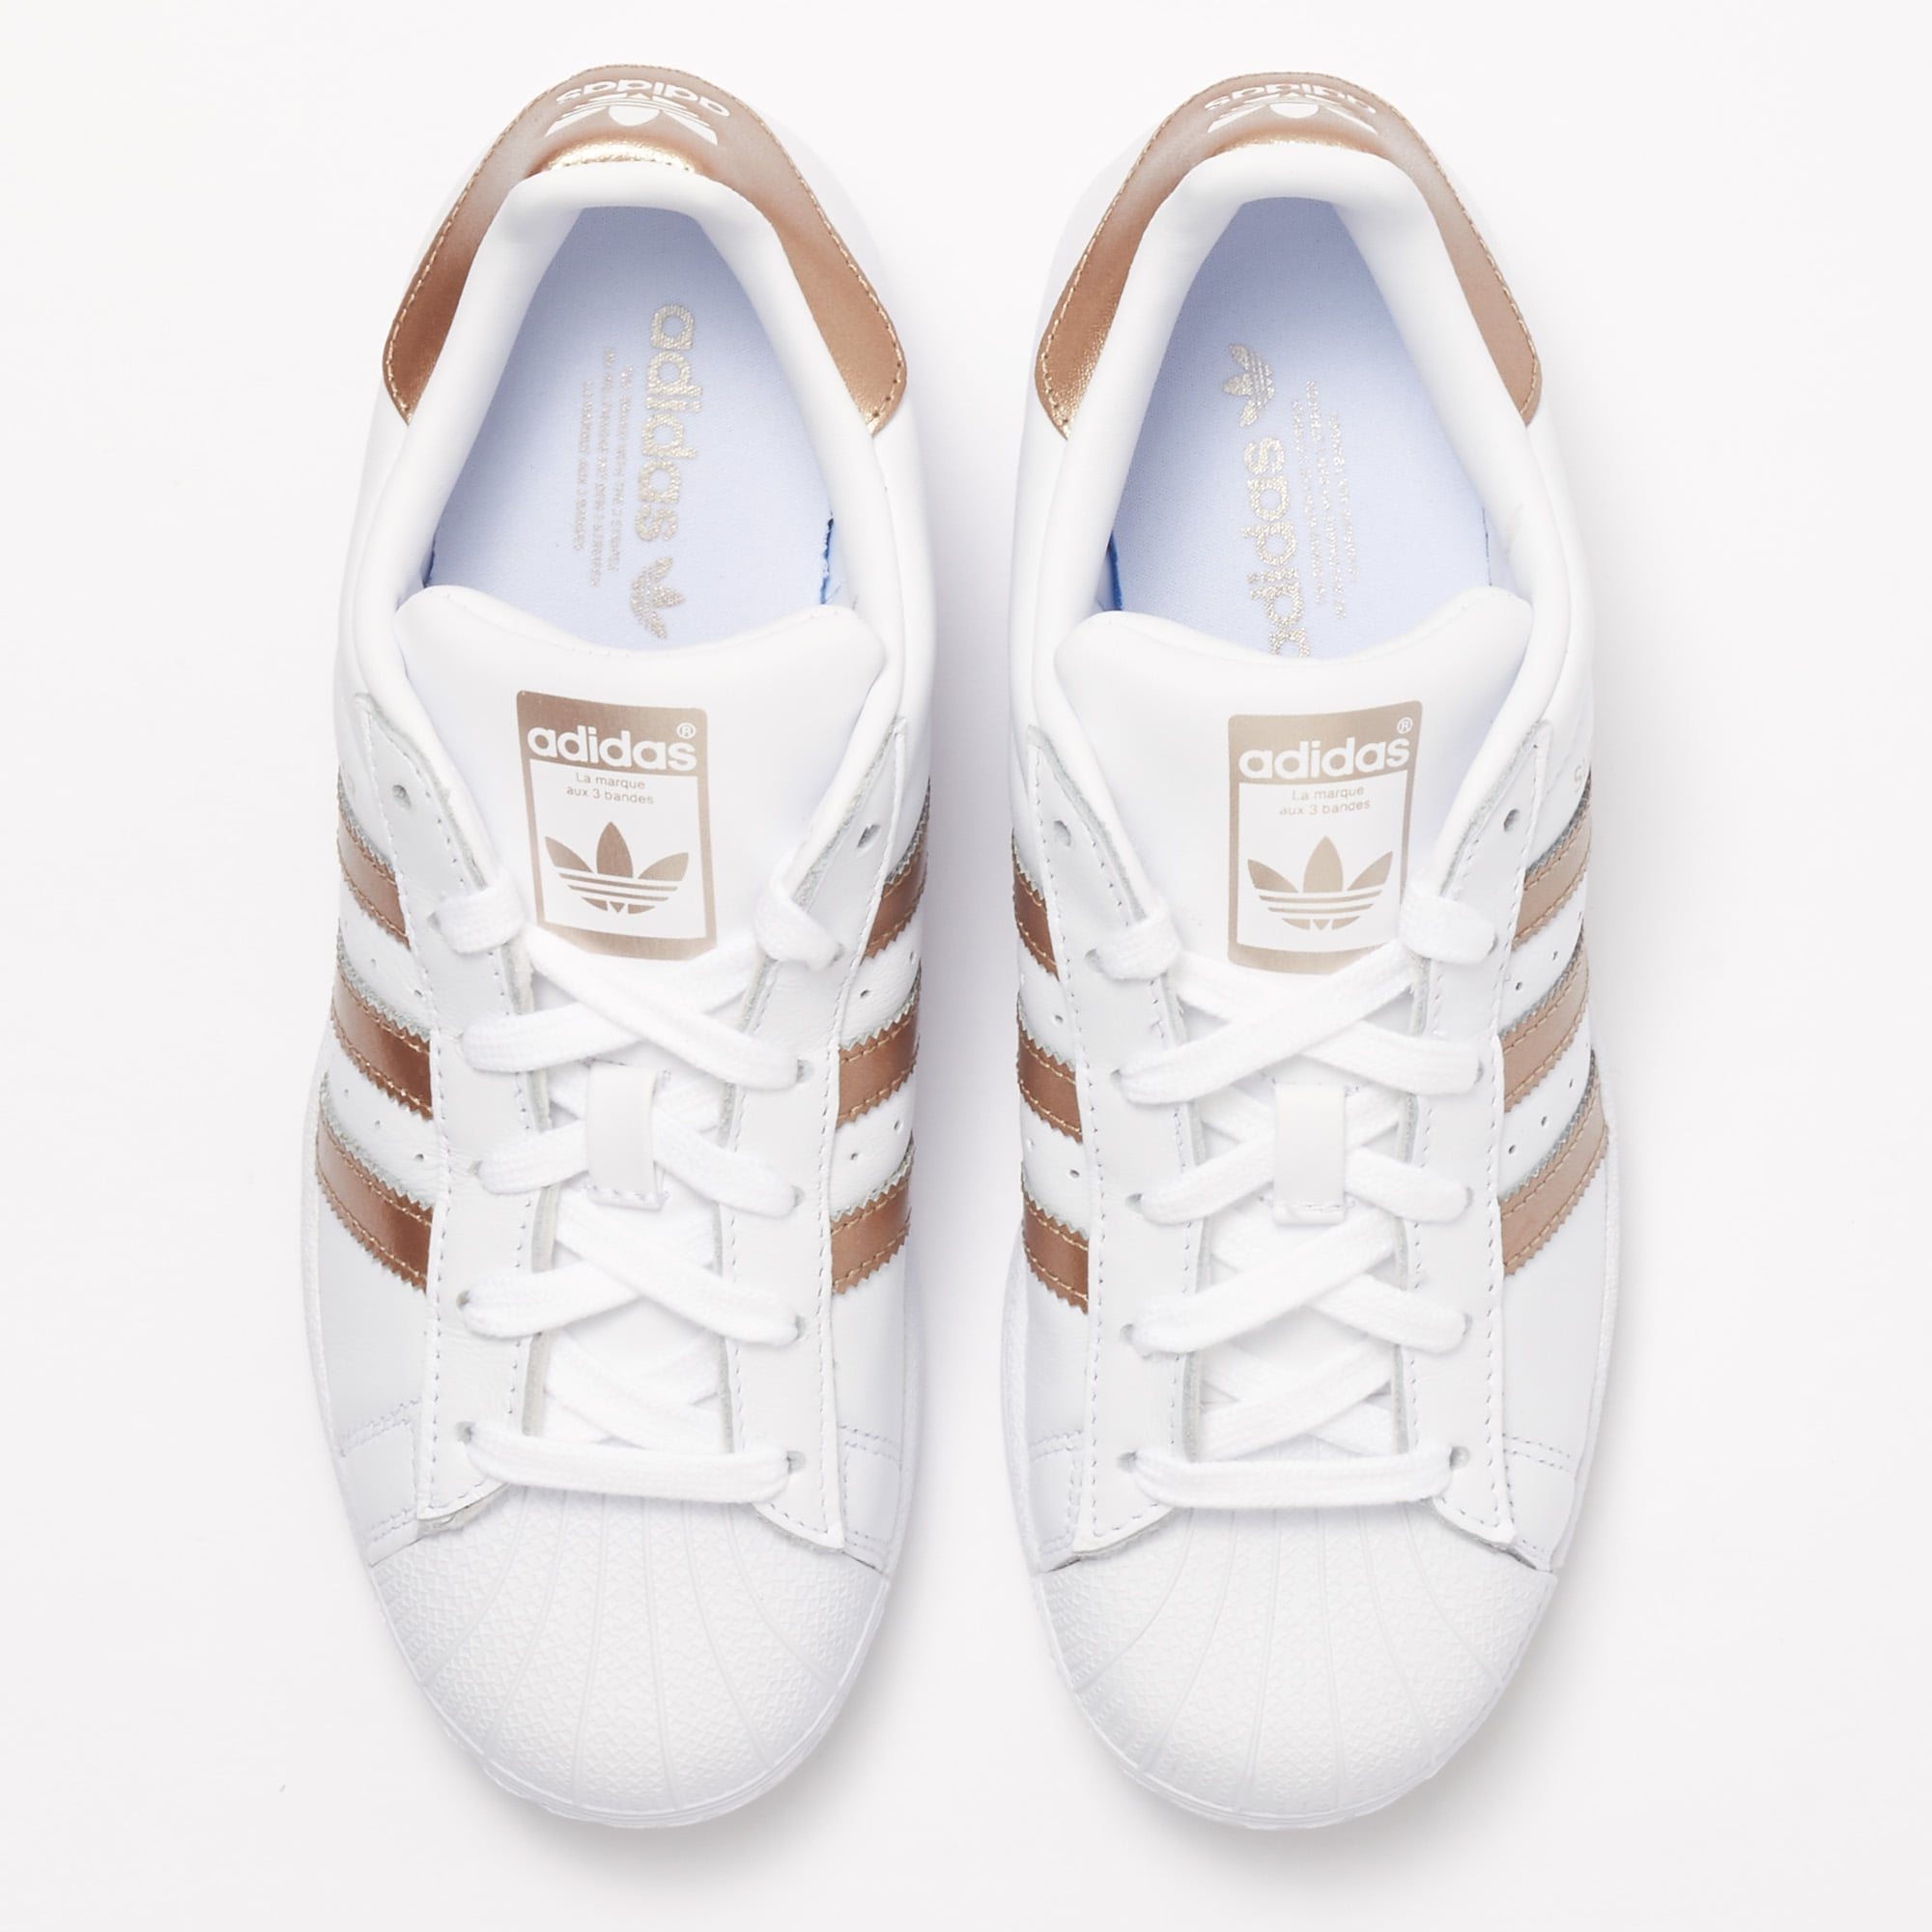 aab1114546c Adidas Originals Womens Superstar Trainers